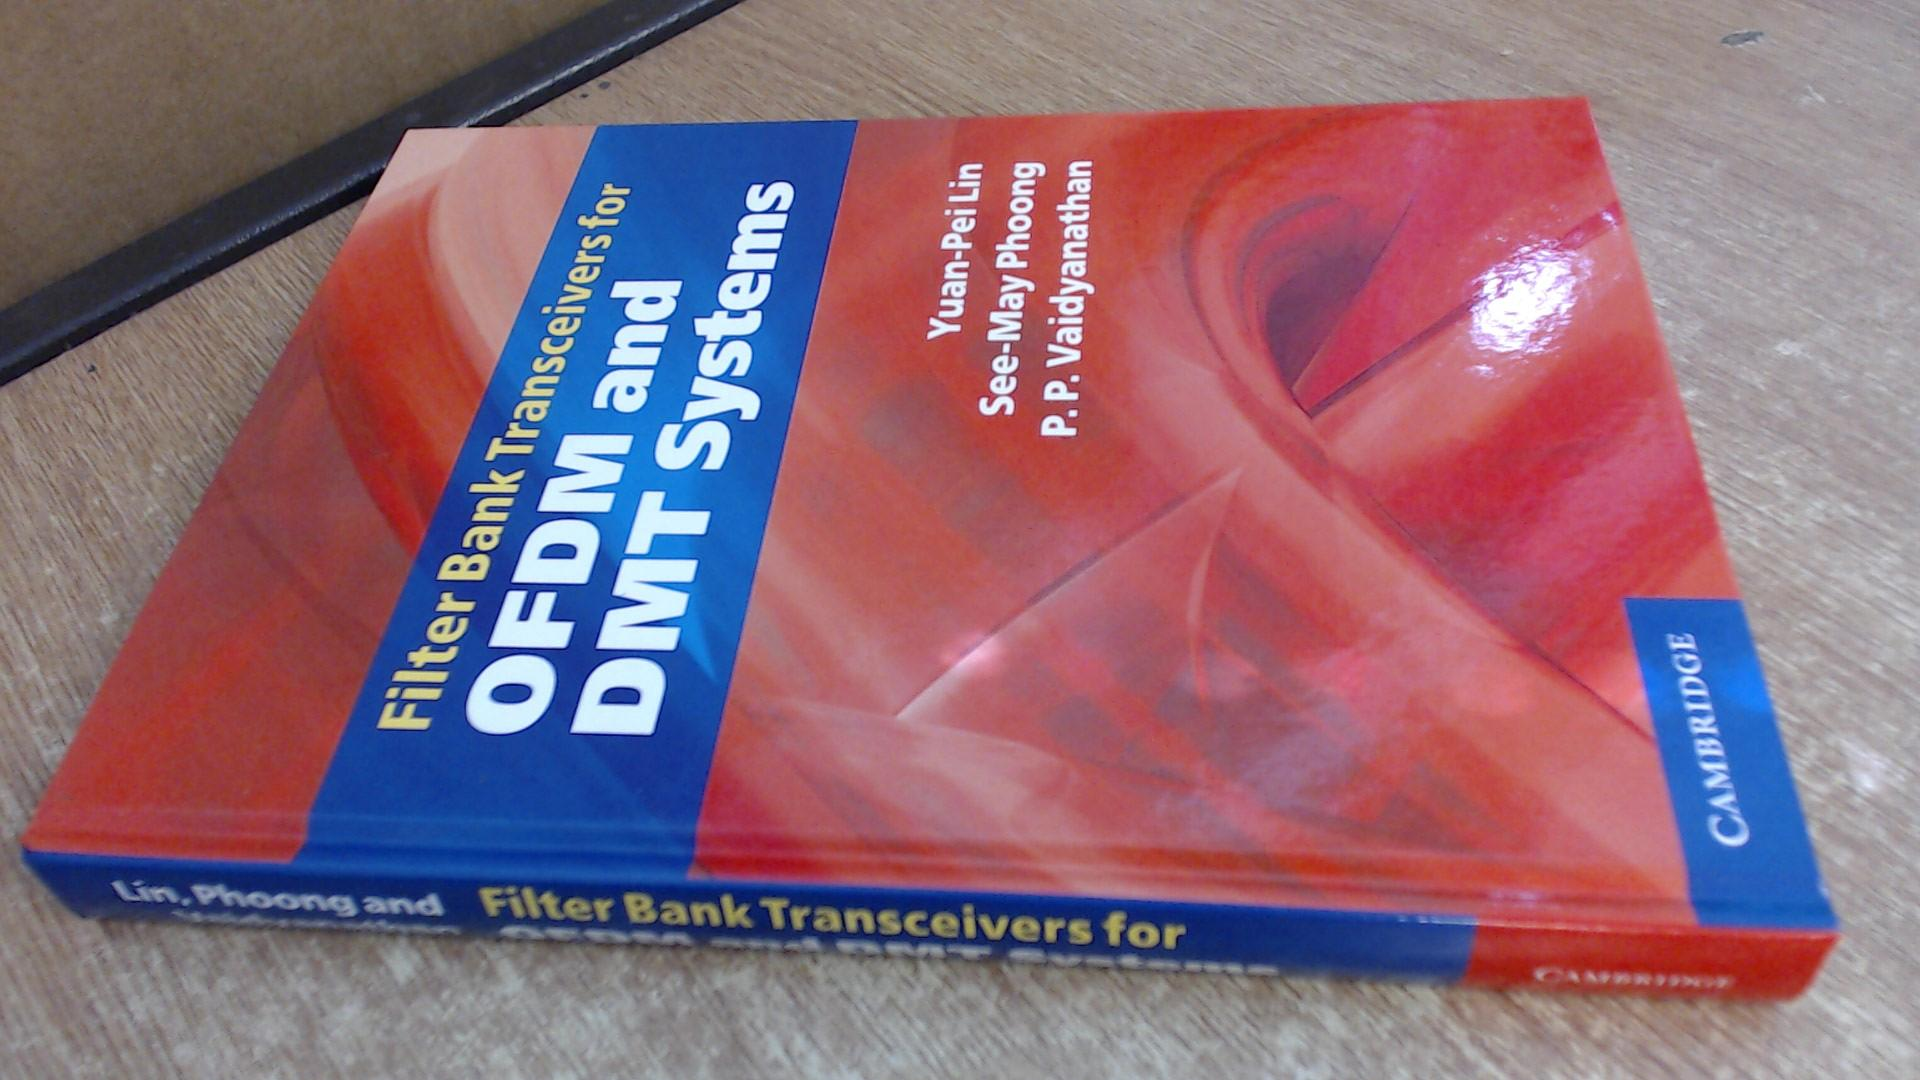 Filter Bank Transceivers For Ofdm And Dmt Systems Various Editors As New Hardcover VG unused book without dust jacket. Boards are clean. Book has clean and bright contents.